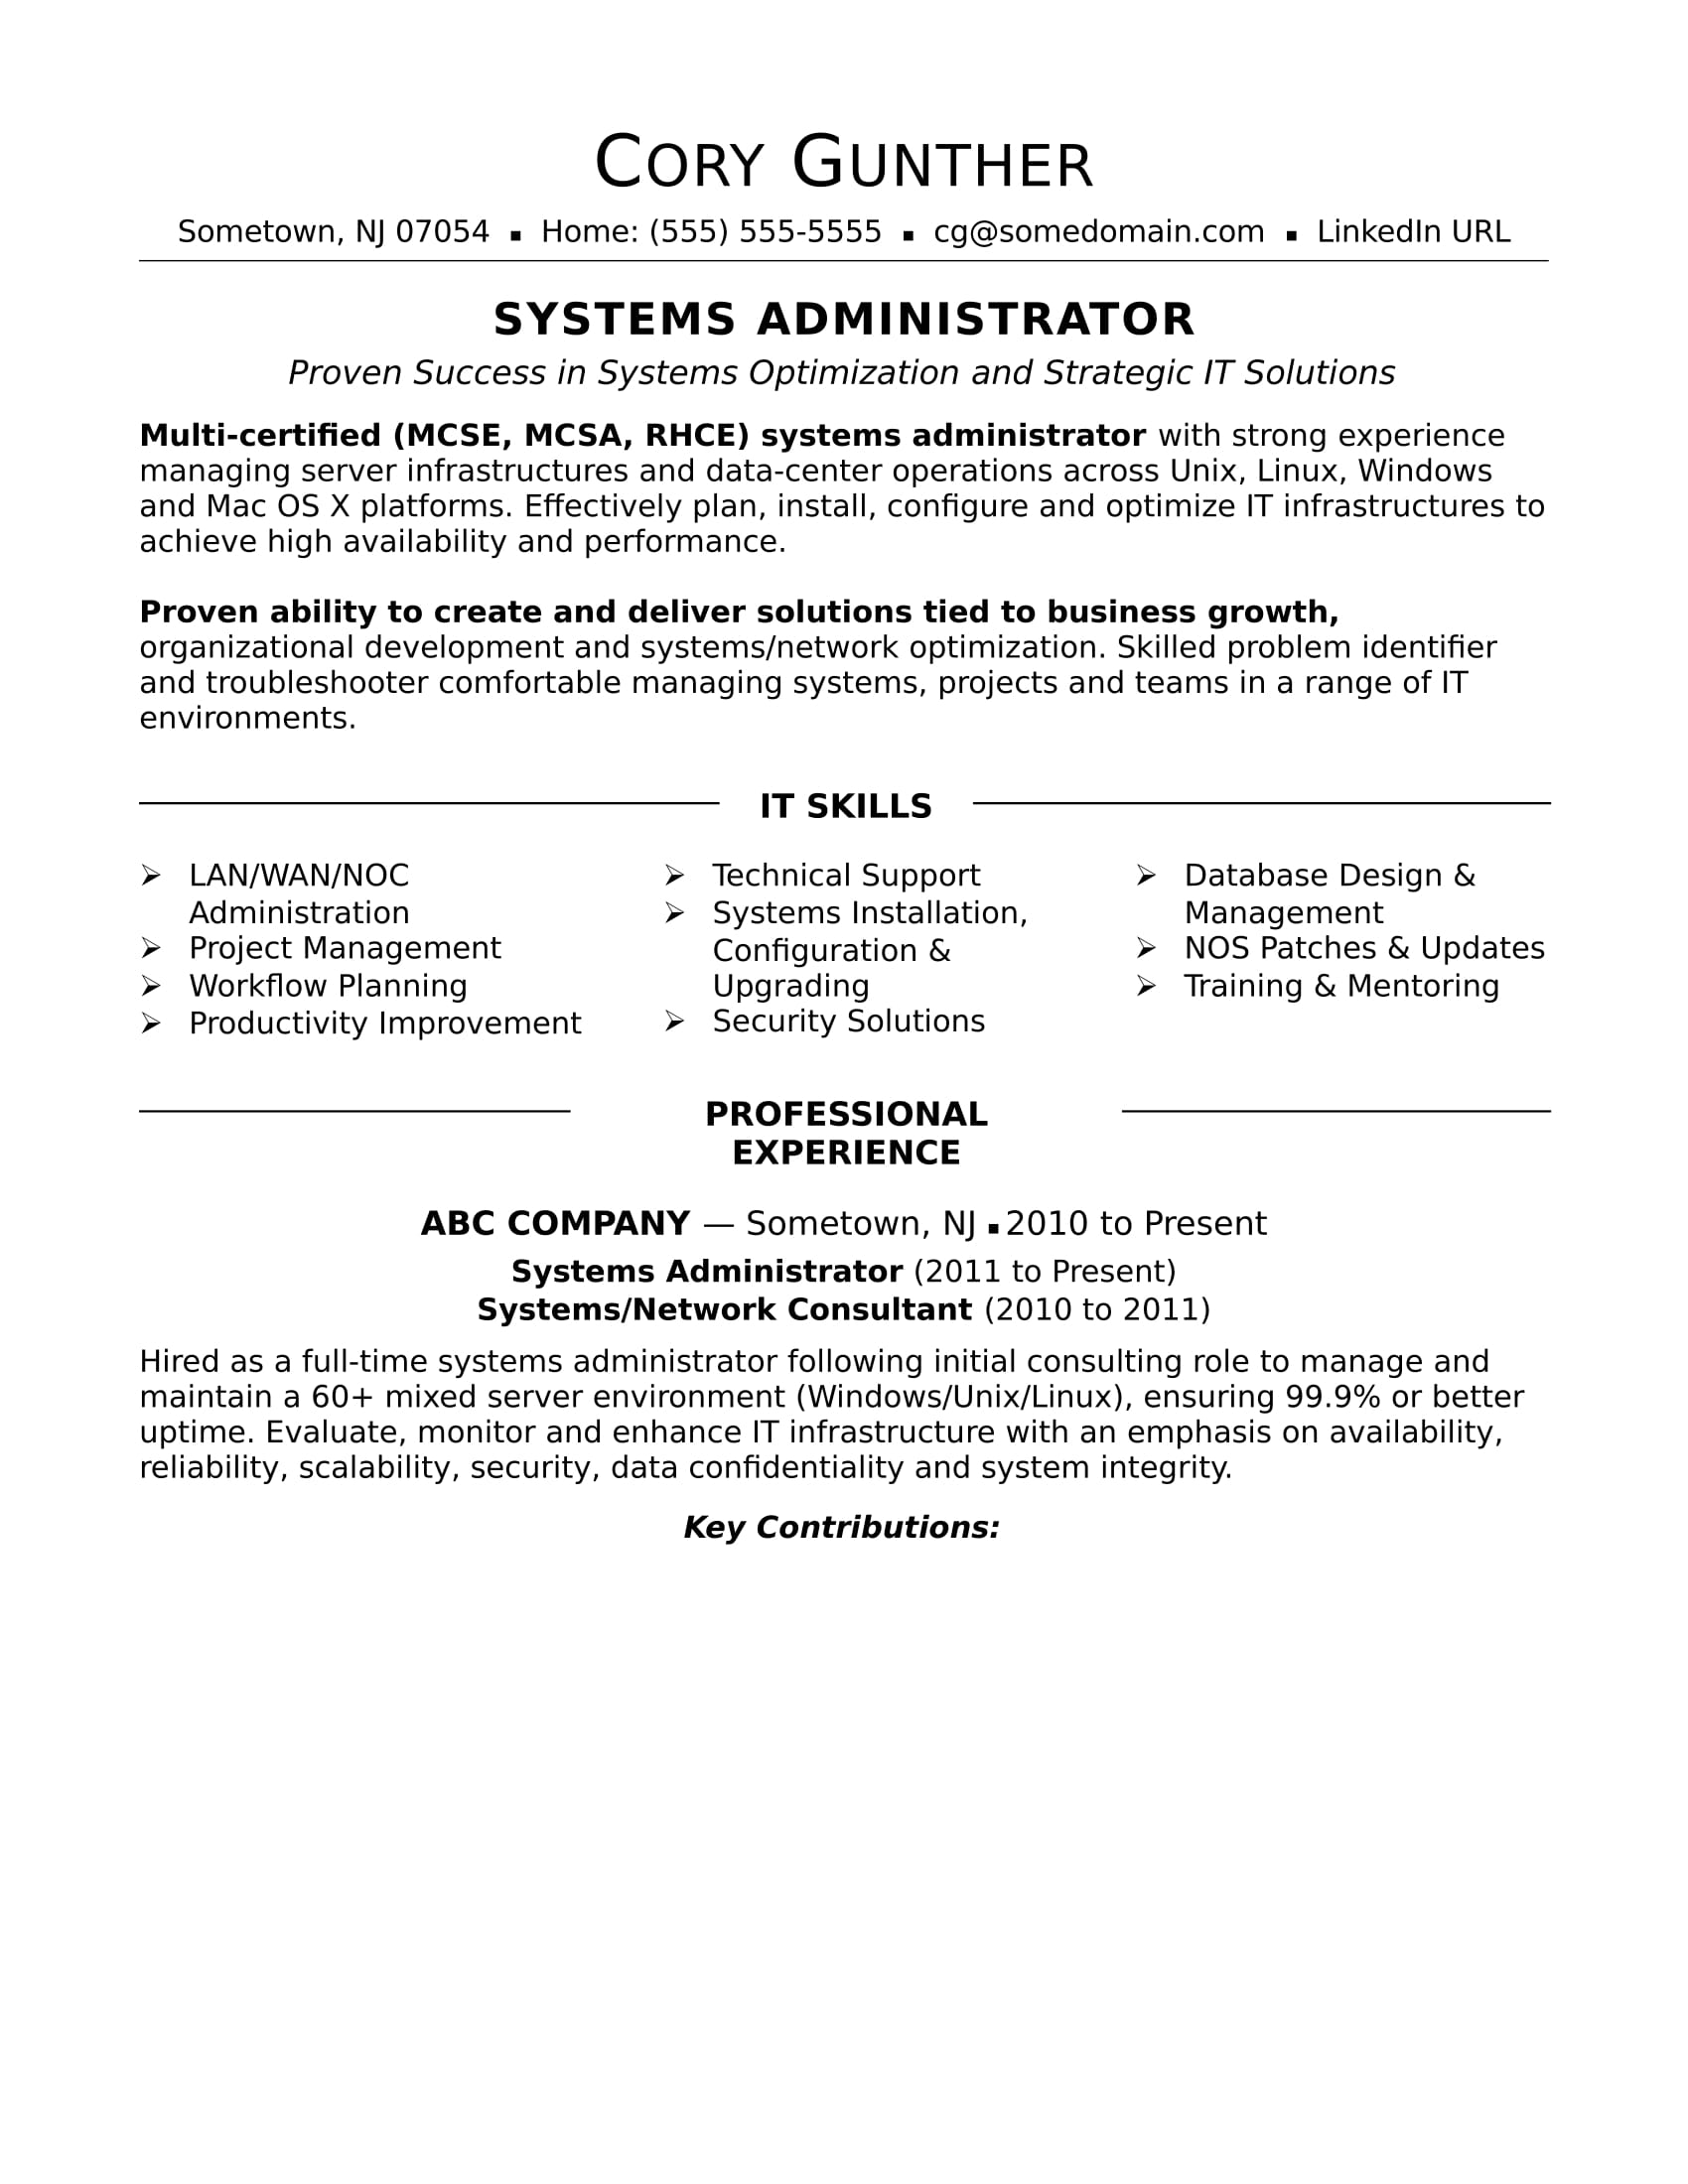 Amazing Sample Resume For An Experienced Systems Administrator Idea Systems Administrator Resume